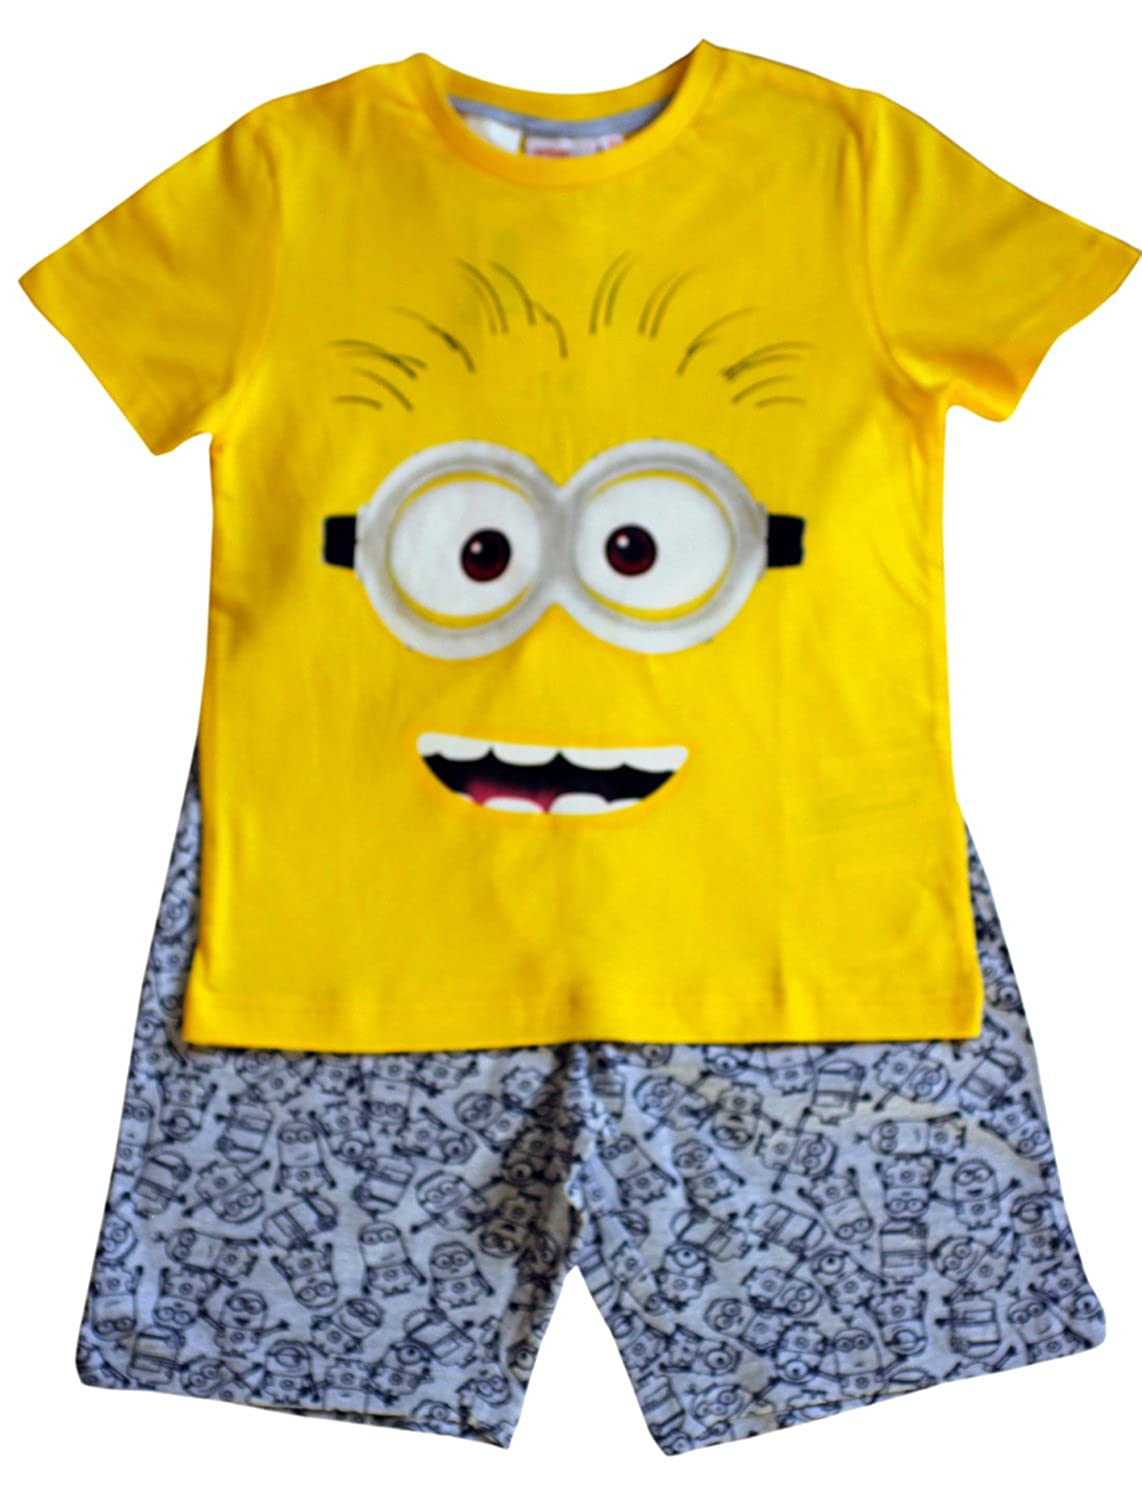 Despicable Me Minion Kids Boy's Yellow & Grey T-Shirt & Shorts Set Age 6, 8, 10 YRS 10 YRS (10 Years)